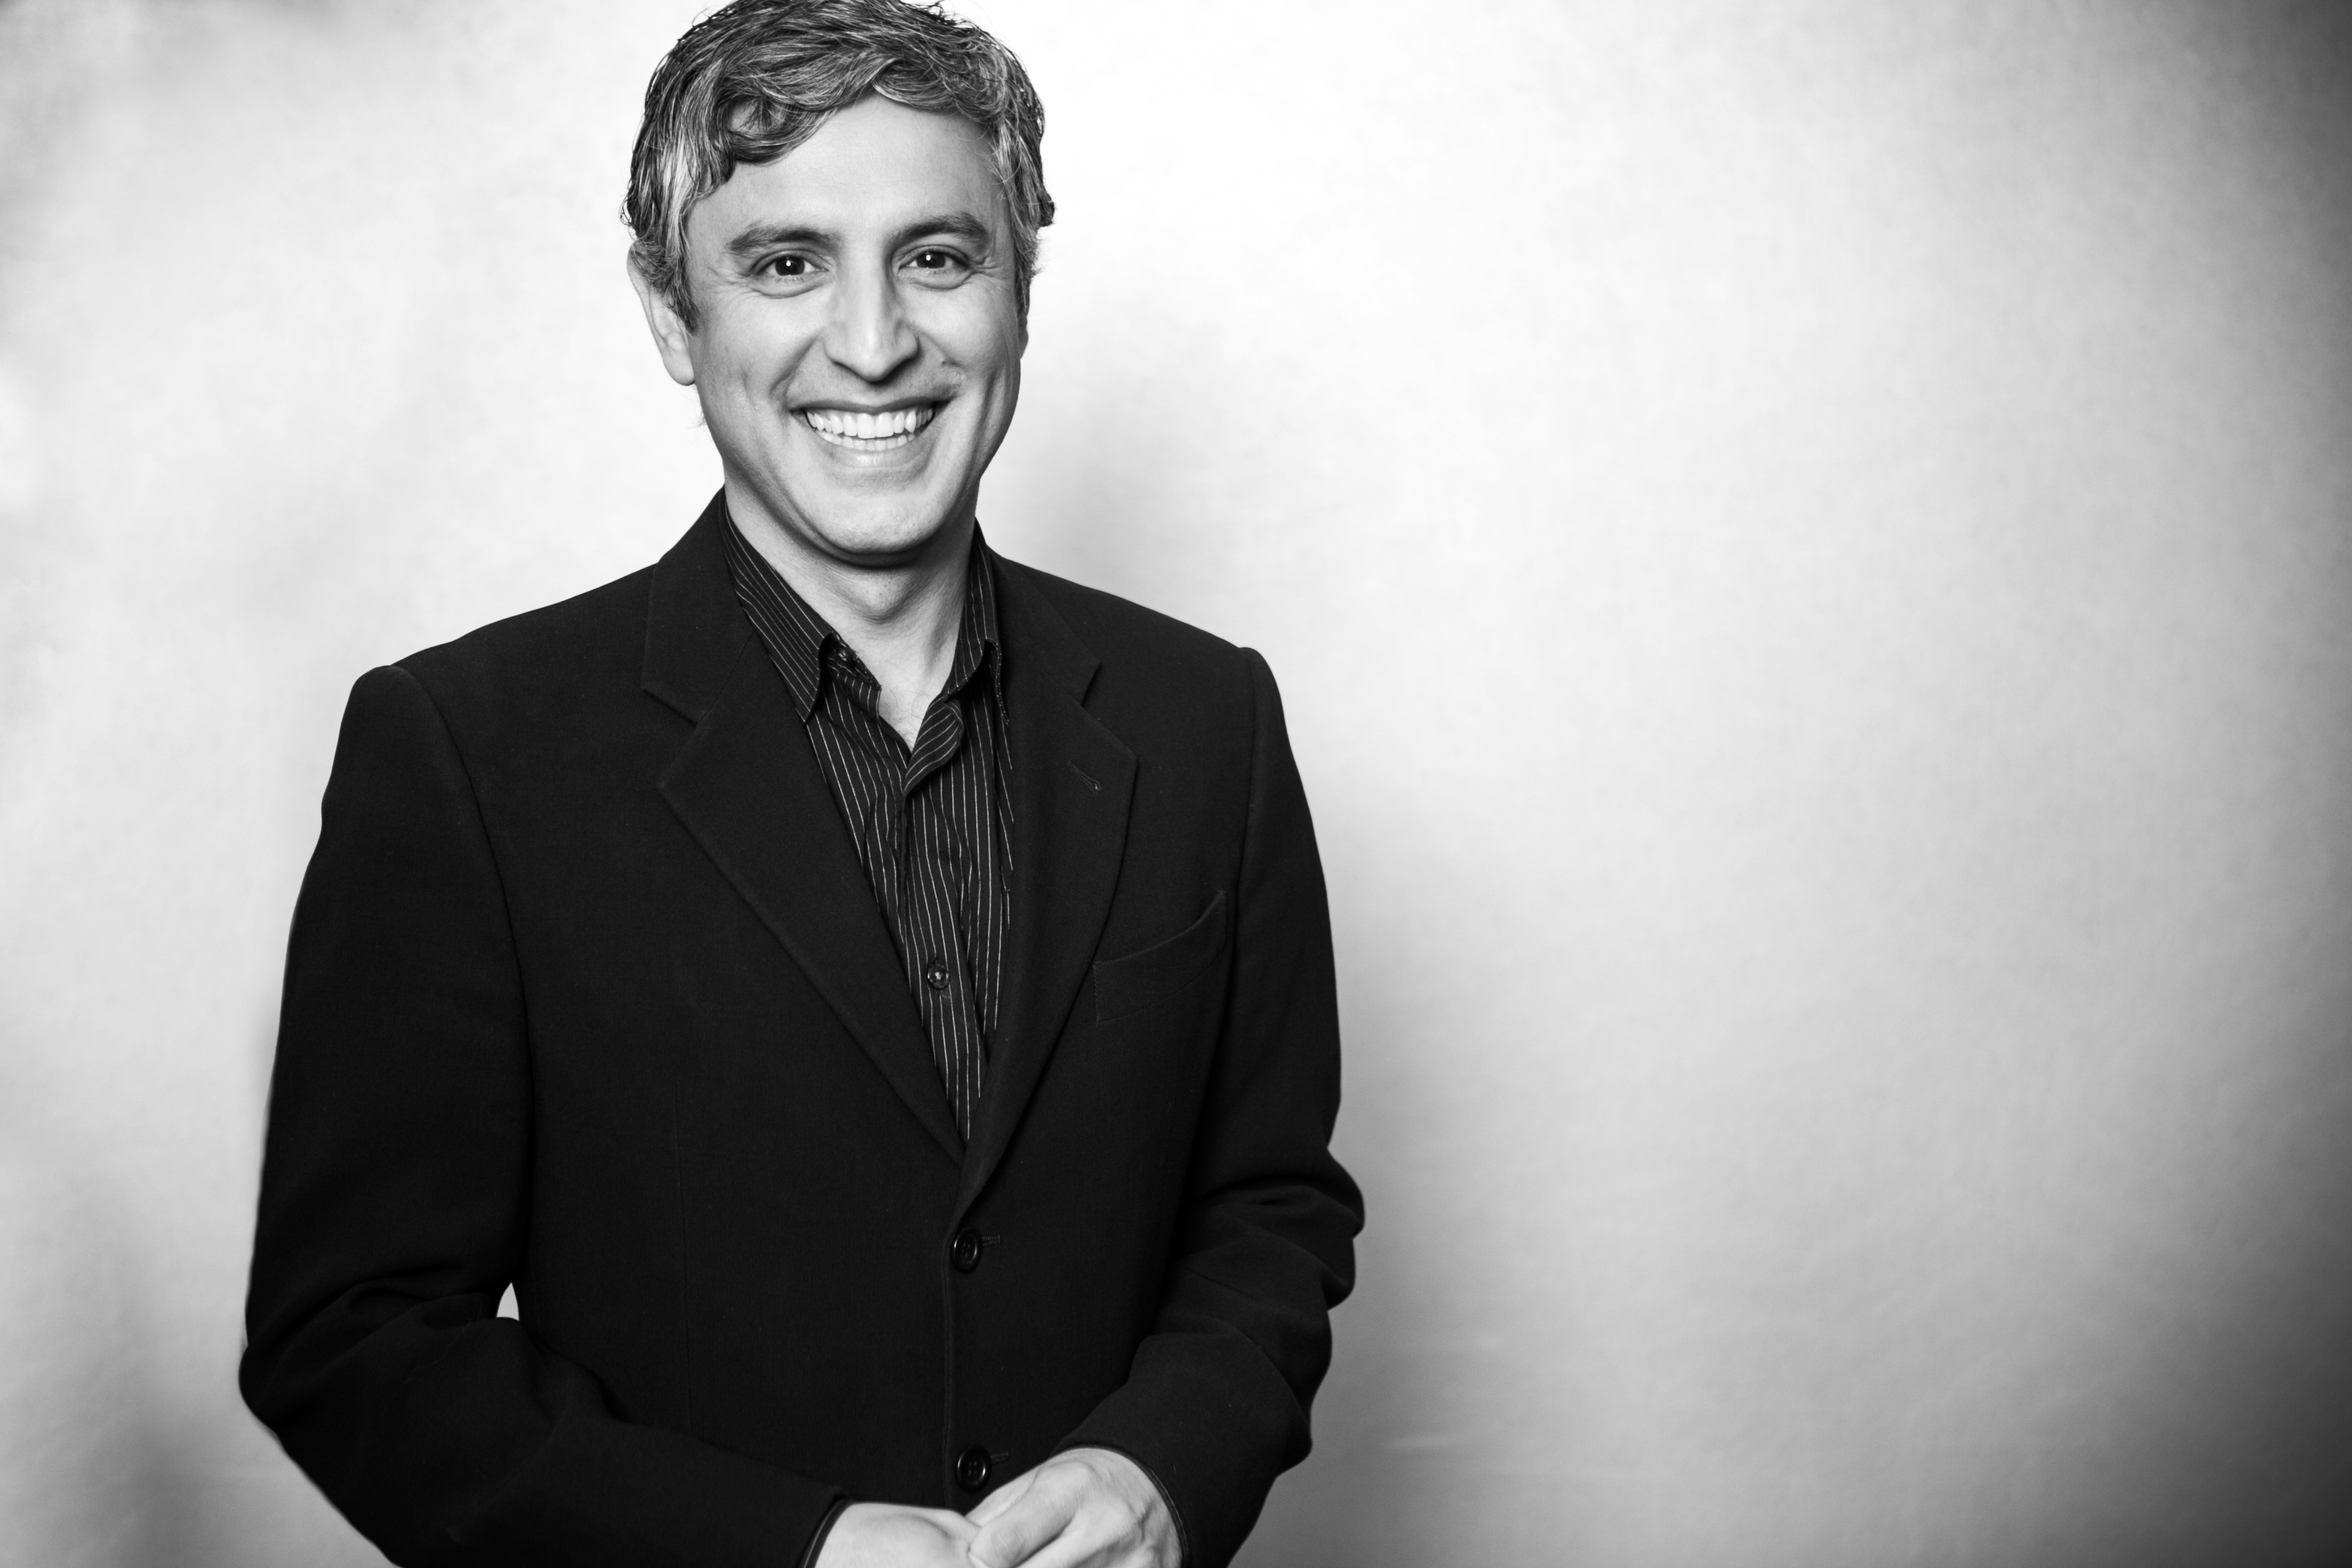 Author Reza Aslan reveals 5 pieces of writing that changed his life